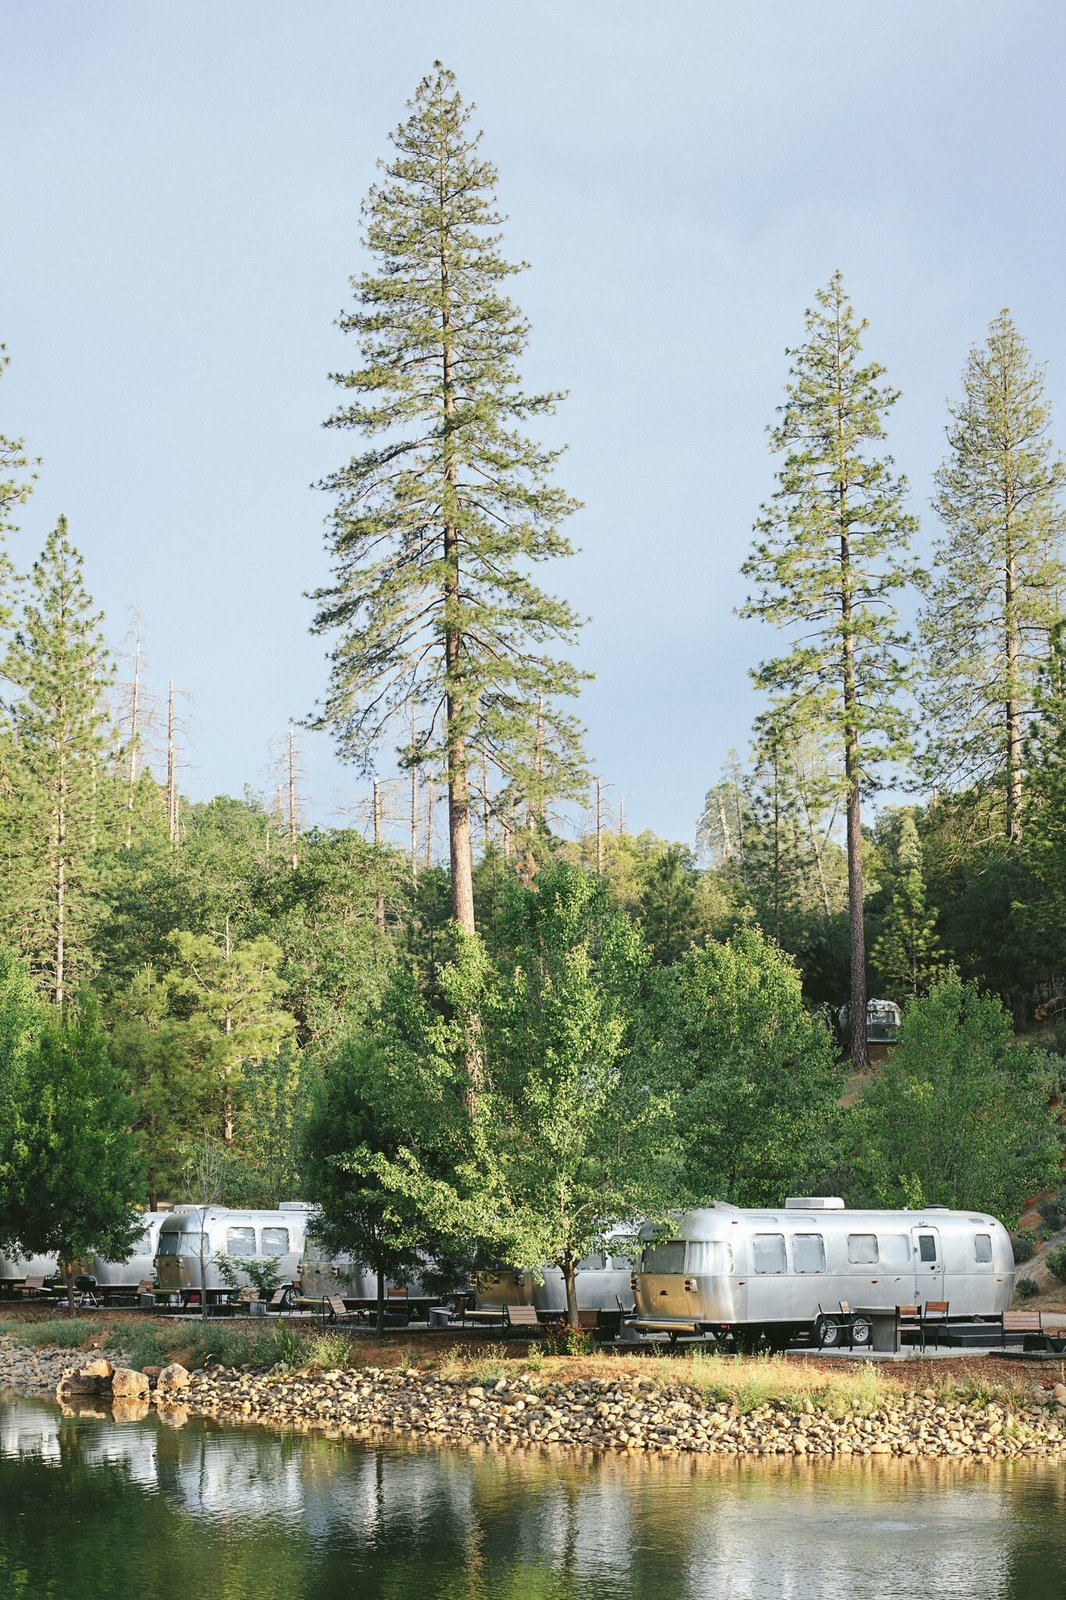 Exterior, Airstream Building Type, Metal Siding Material, and Metal Roof Material Our airstream suites looked out onto the natural pond at the center of the grounds. At night, most guest light up their fire pits to roast marshmallows and relax.  Best Photos from AutoCamp's Epic New Location Brings Upscale Airstream Lodging to Yosemite National Park